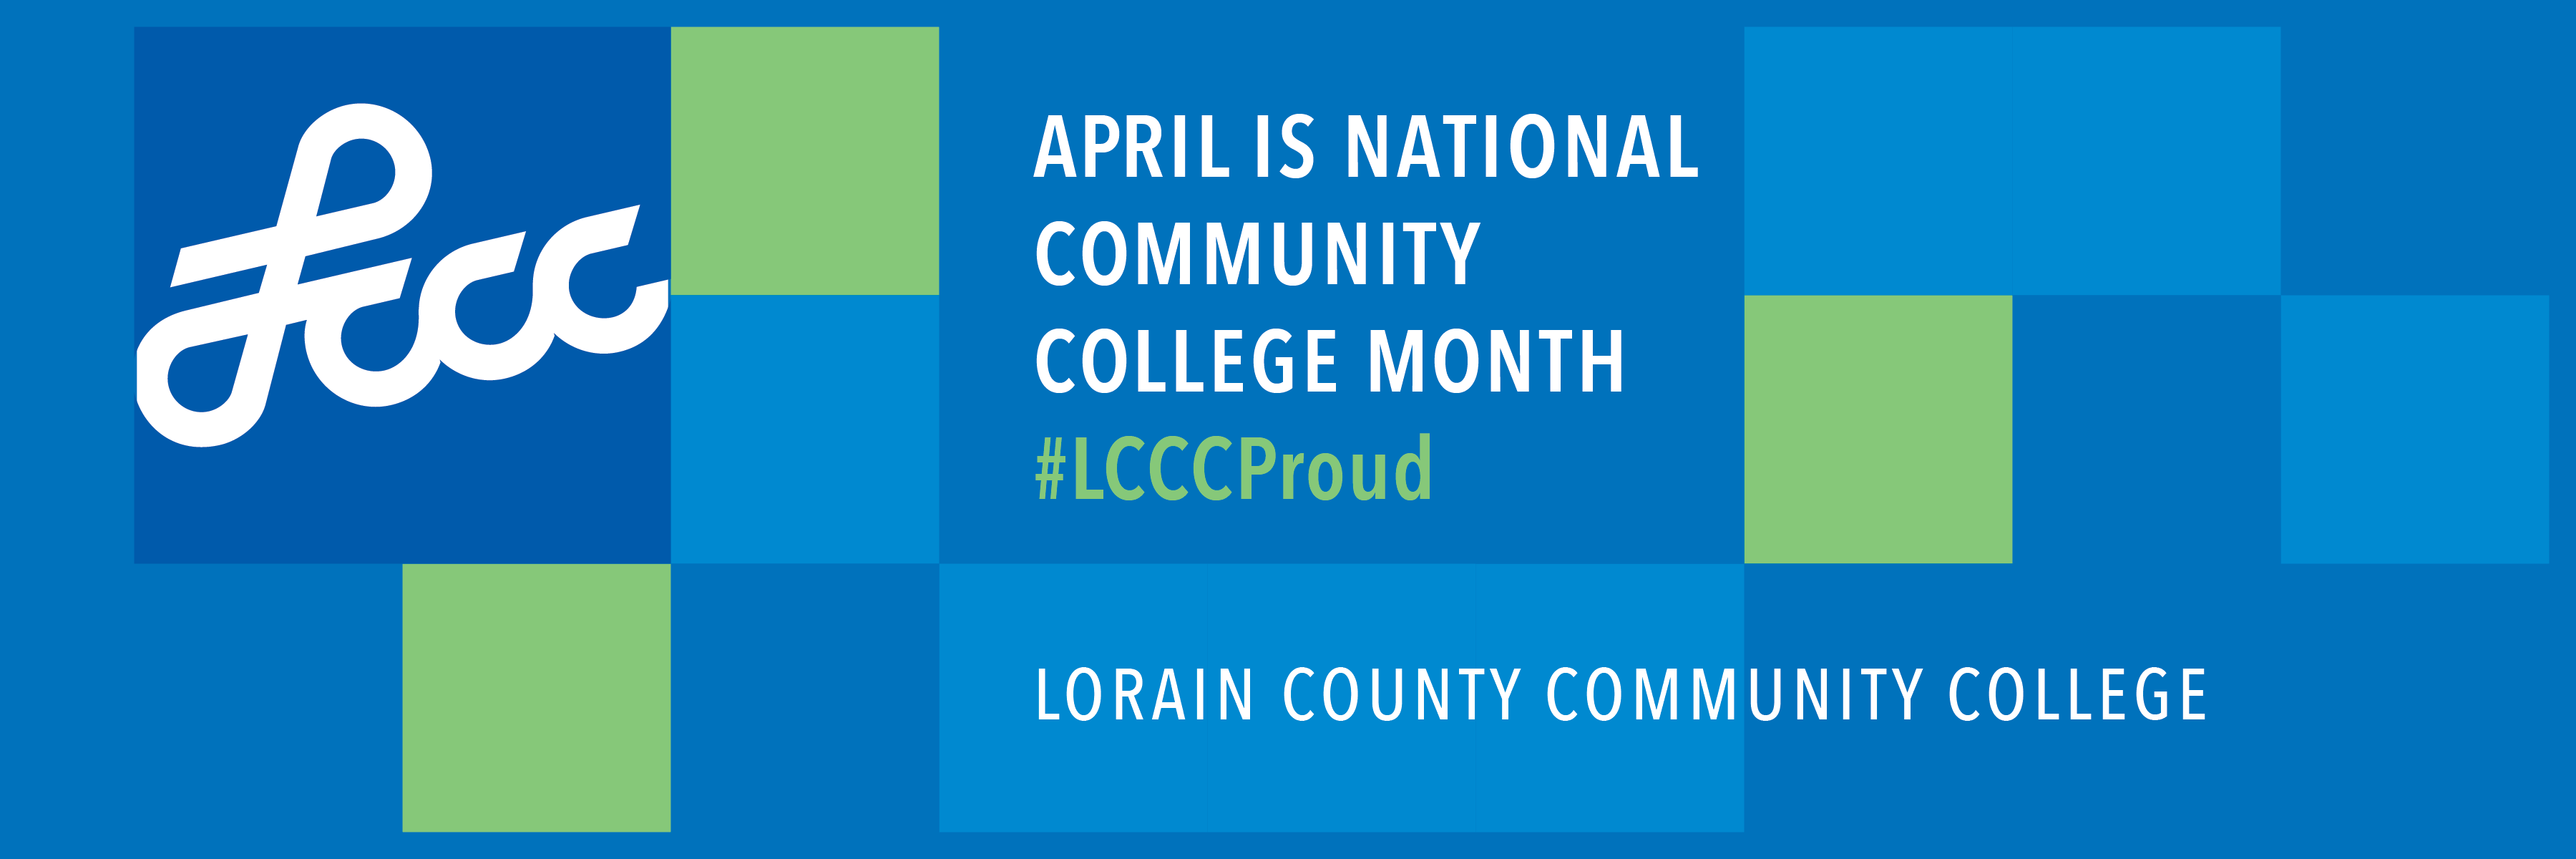 April is National Community College Month #LCCCProud